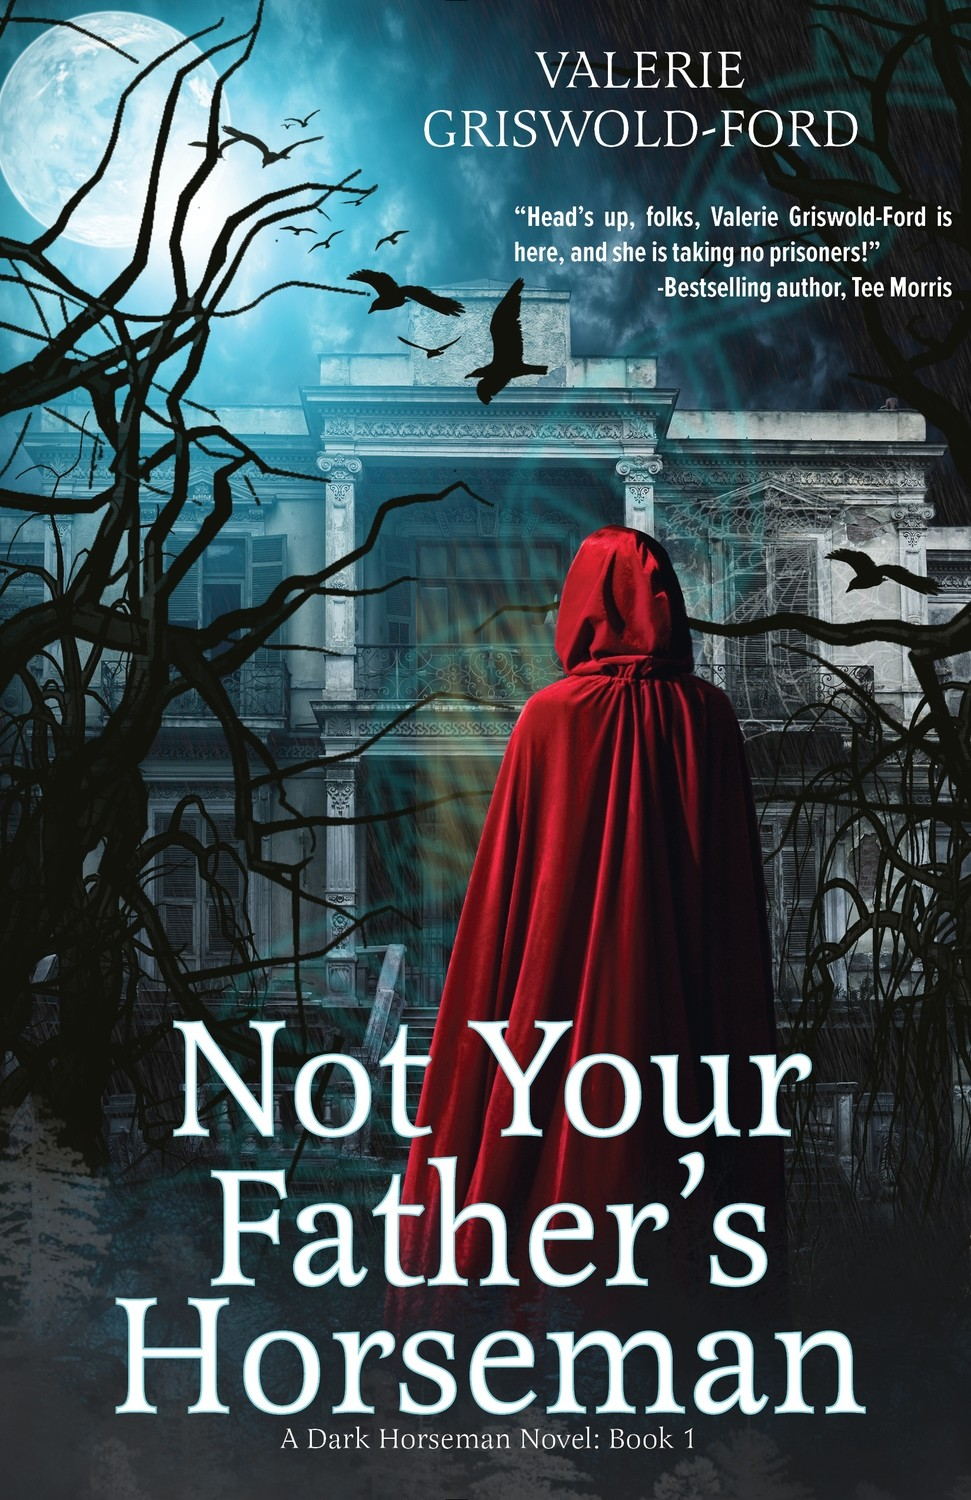 Not Your Father's Horseman by Valerie Griswold-Ford